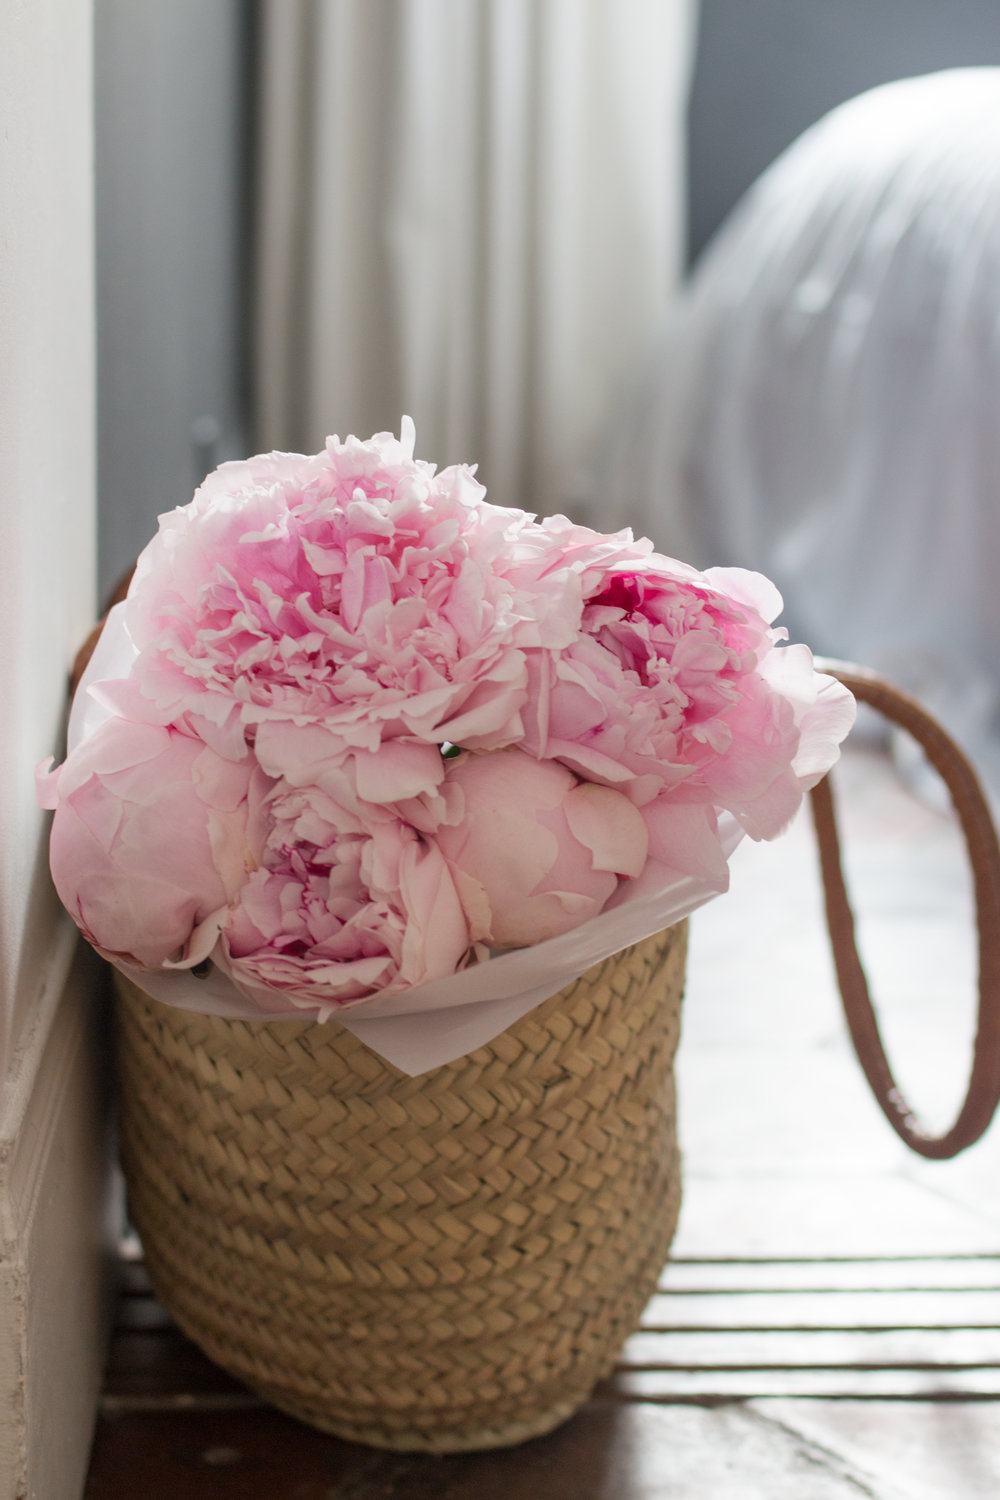 picnic basket with pink peonies in paris, france